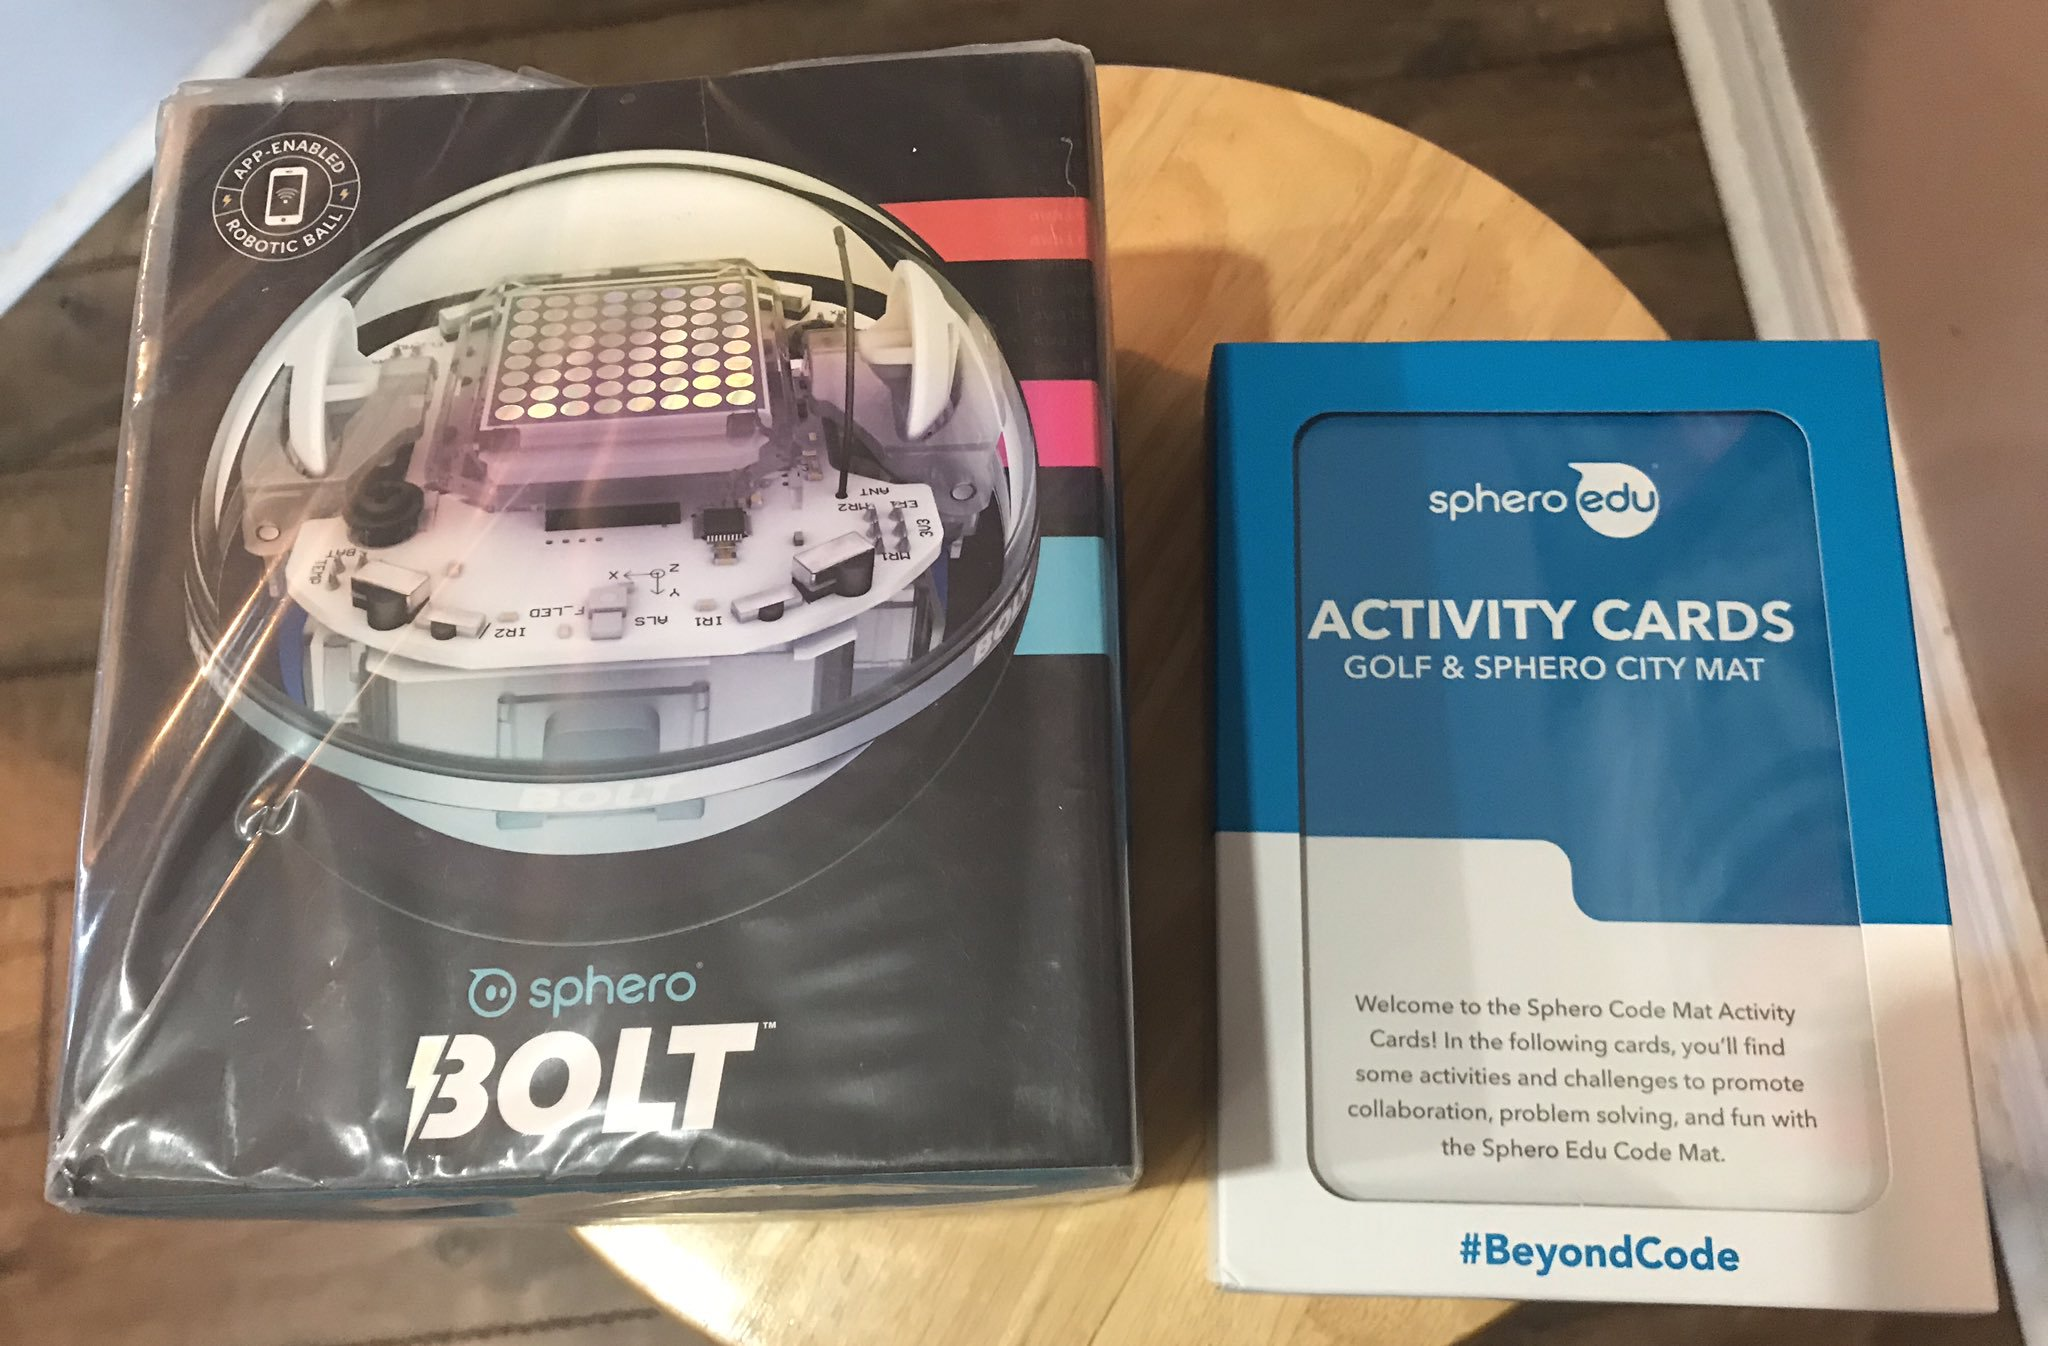 Win a FREE Sphero Bolt!